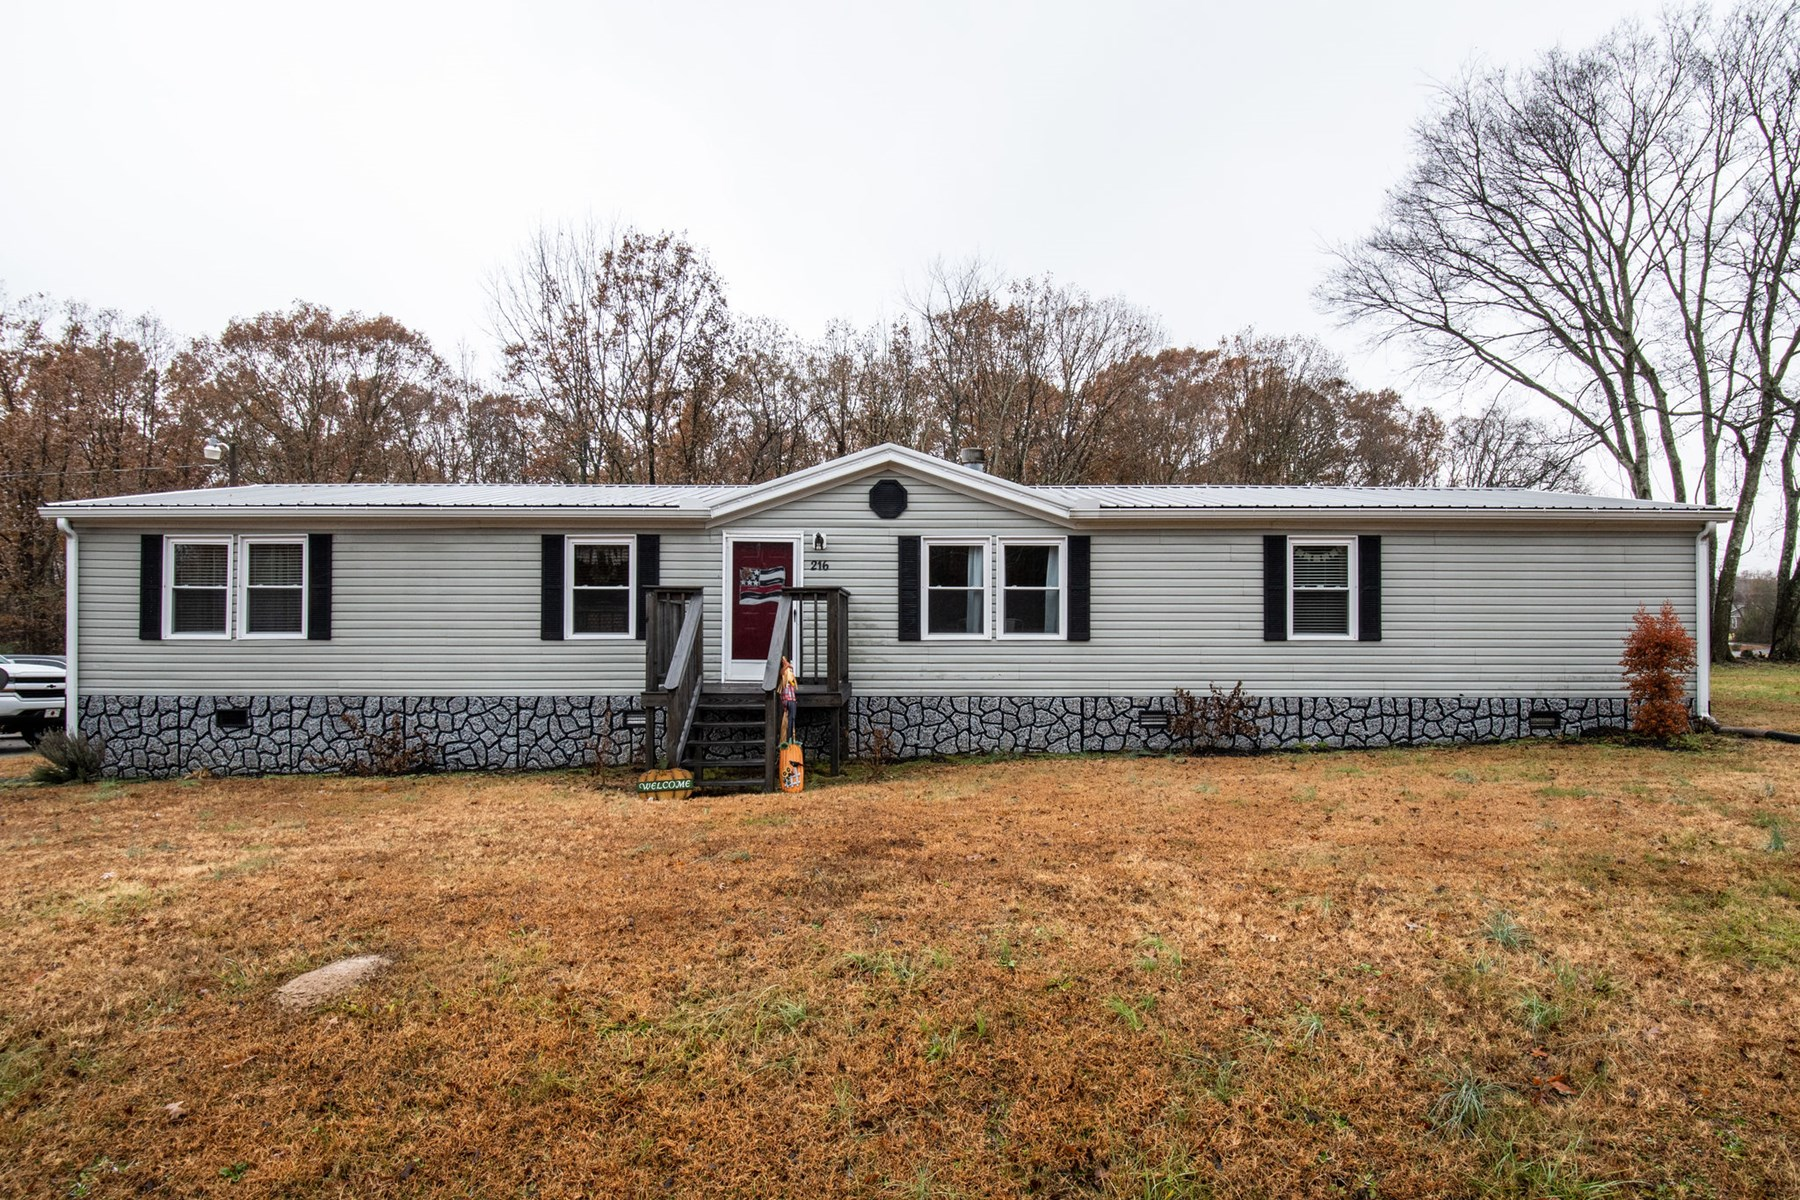 4 Bedroom Home on Acre Lot, for Sale in Hohenwald, Tennessee